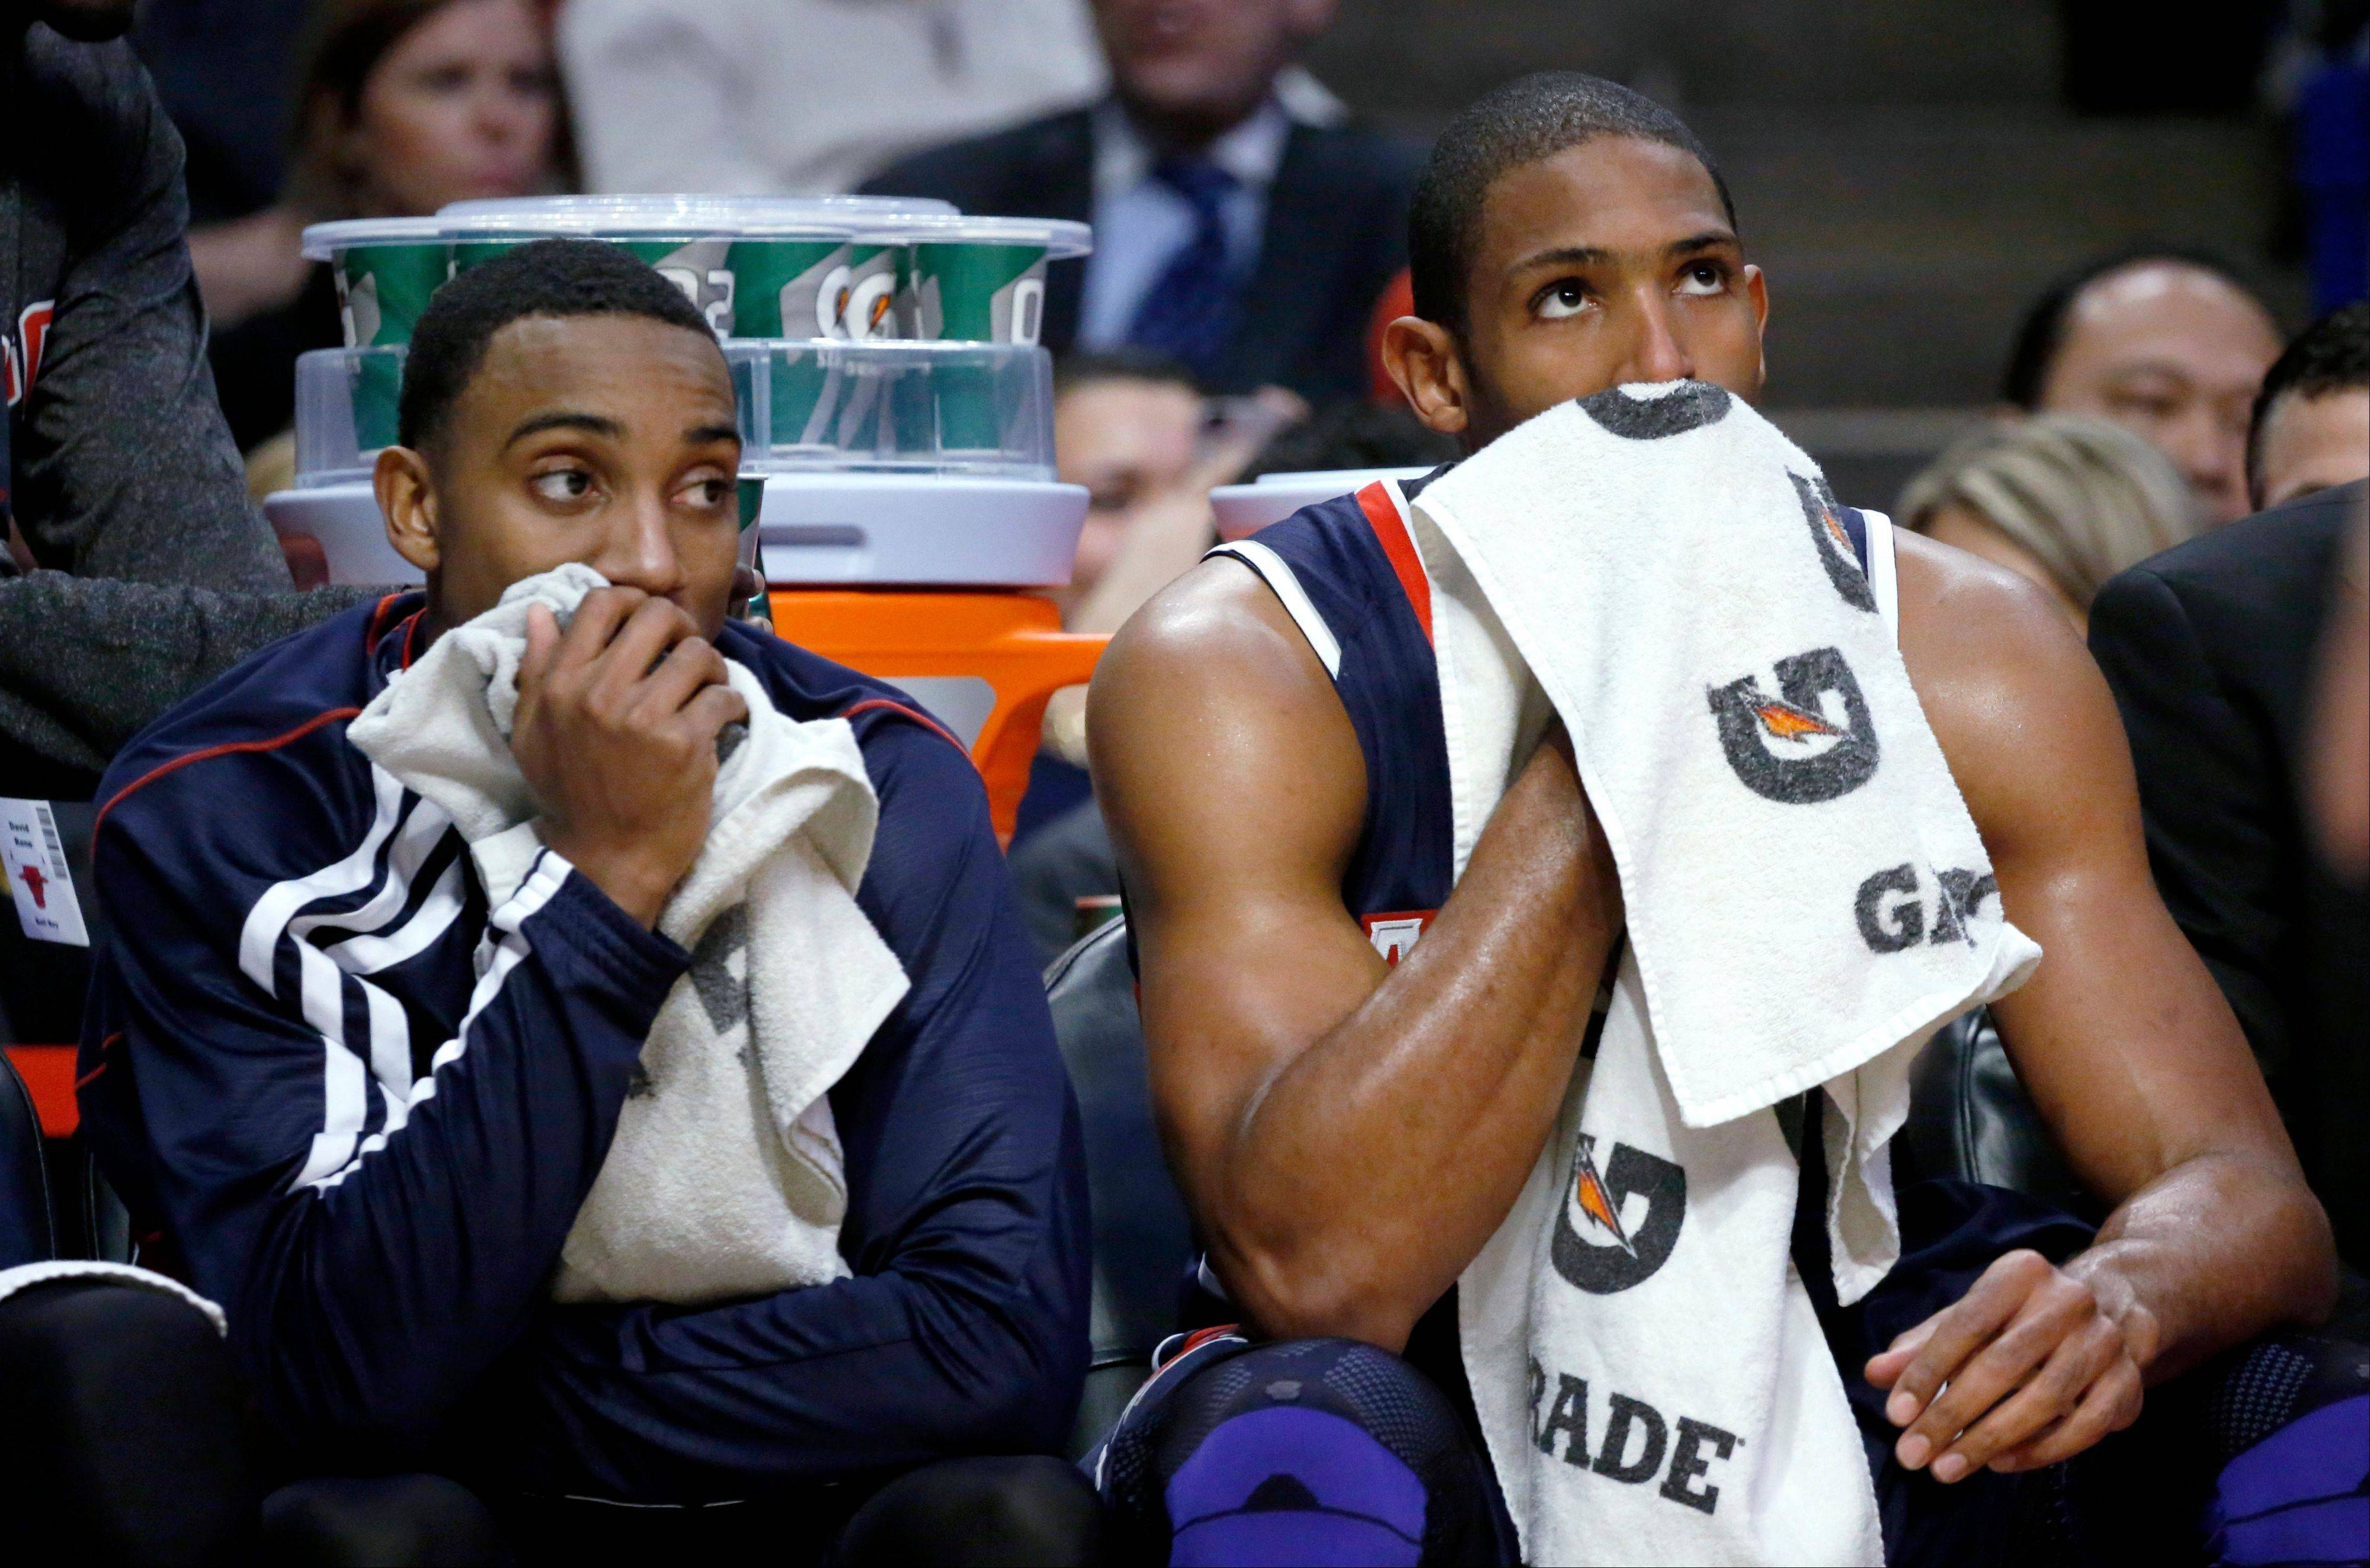 Atlanta Hawks' Jeff Teague, left, and Al Horford sit on the bench during the second half of an NBA basketball game against the Chicago Bulls on Monday, Jan. 14, 2013, in Chicago. The Bulls won 97-58.